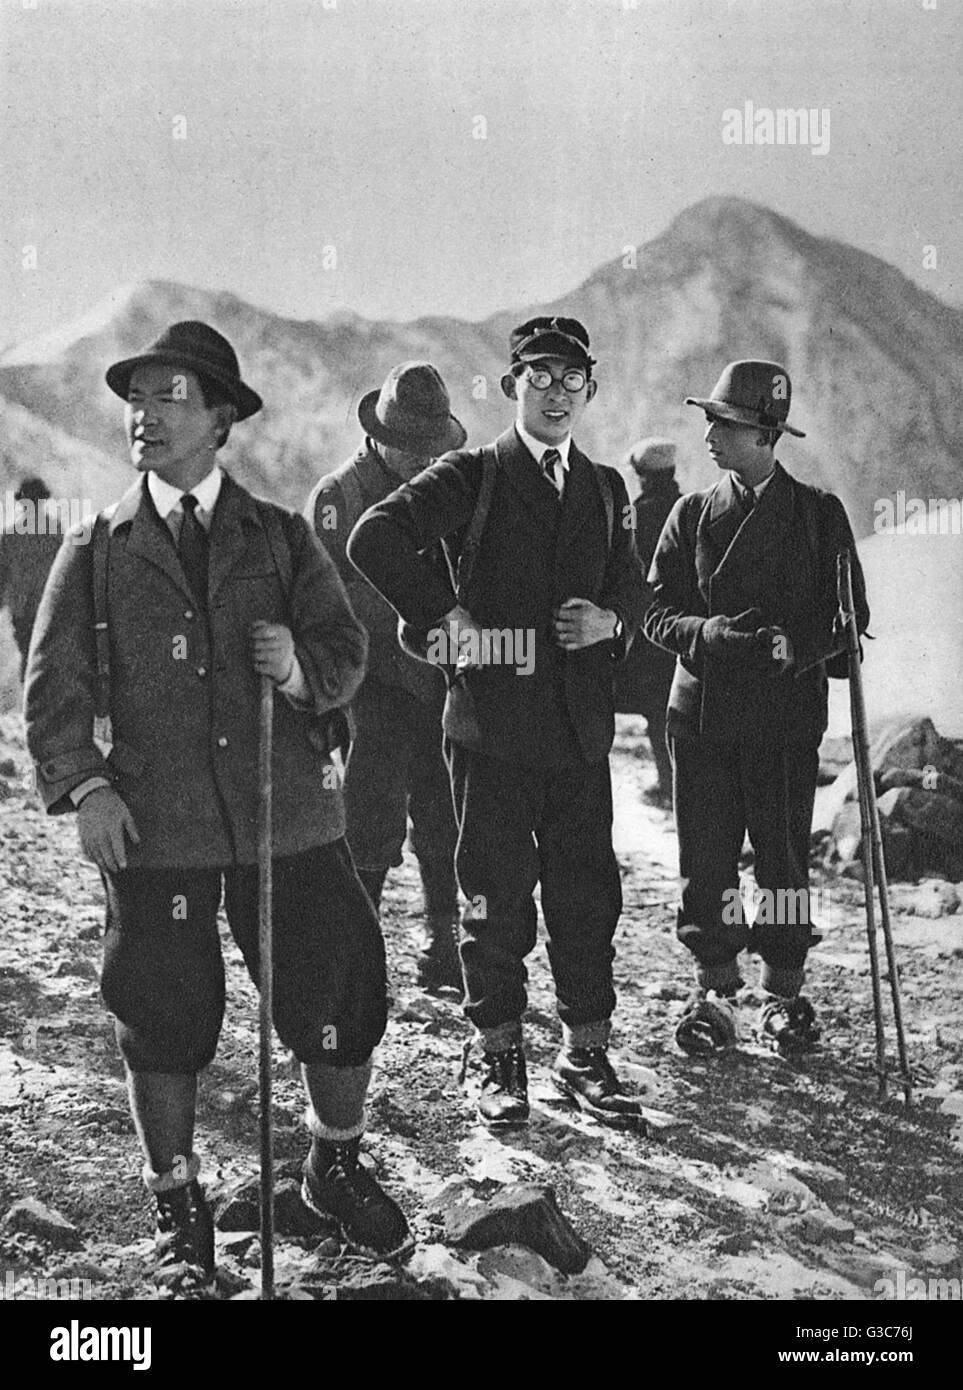 A group of Japanese mountaineers are accompanied by 'H.I.H Prince Chichibu' in the centre of the frame. - Stock Image